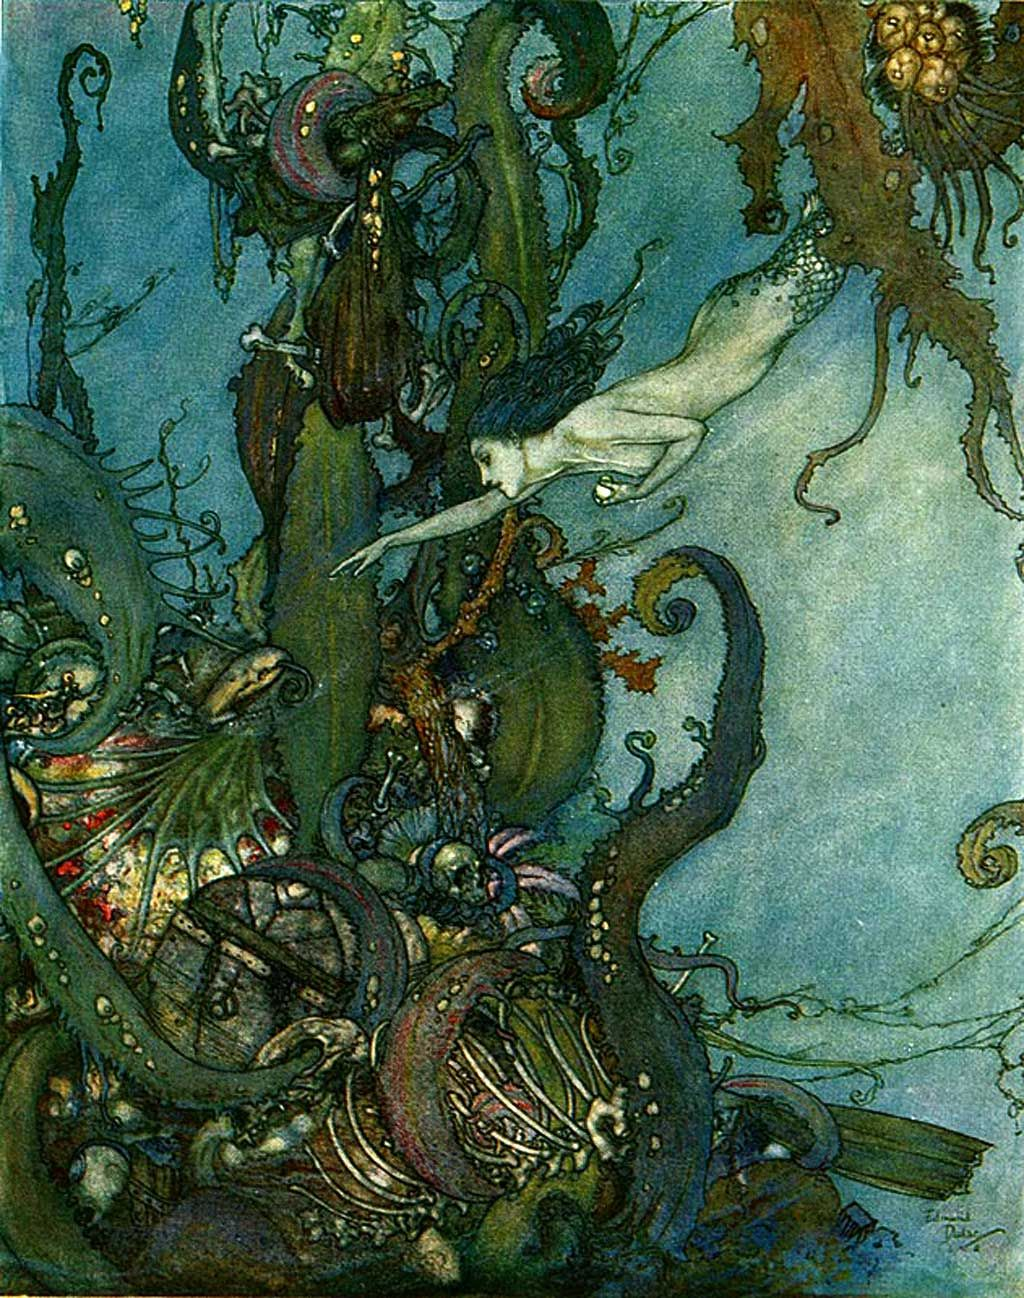 Sex With Mermaid Edmund Dulac And